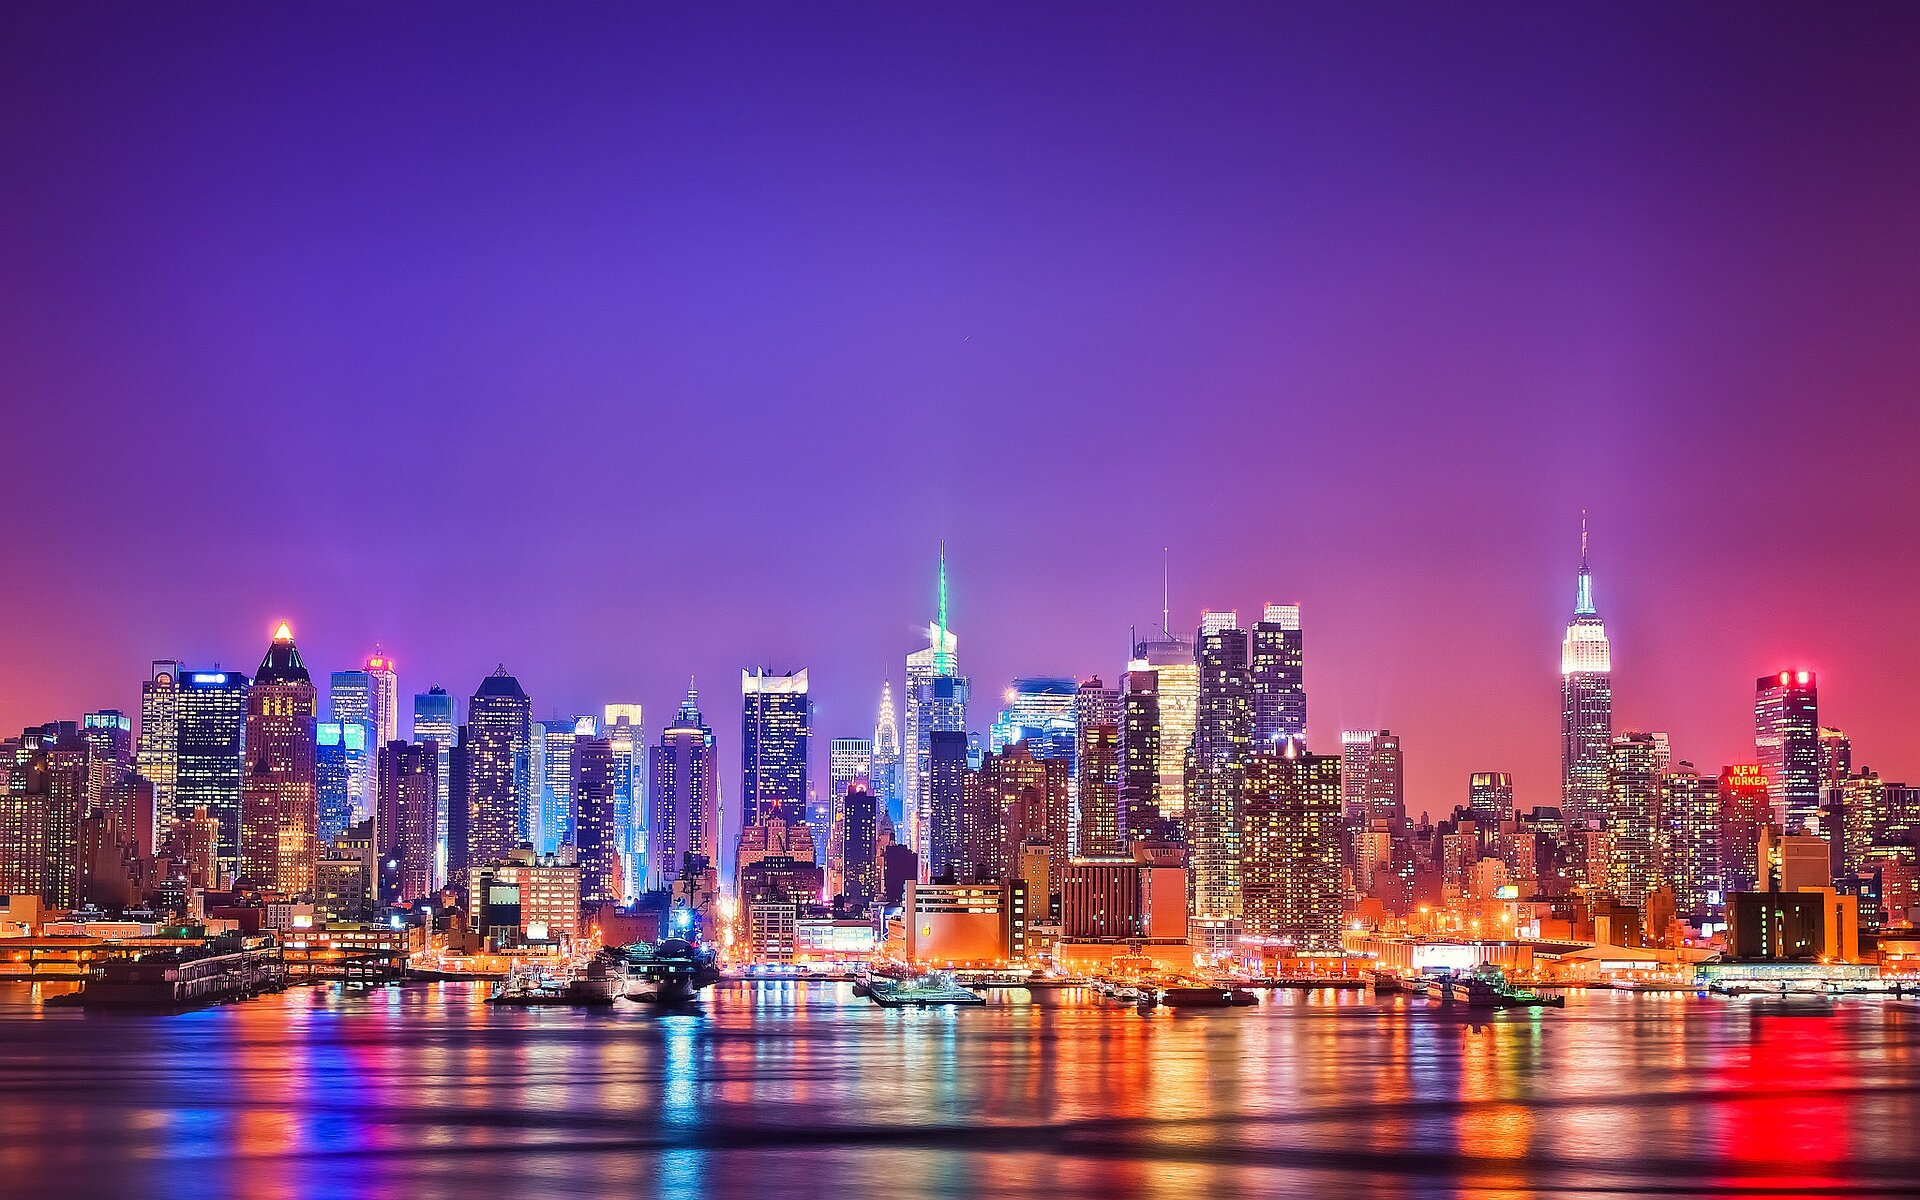 The 15 most beautiful city view photos mostbeautifulthings for New york city beautiful